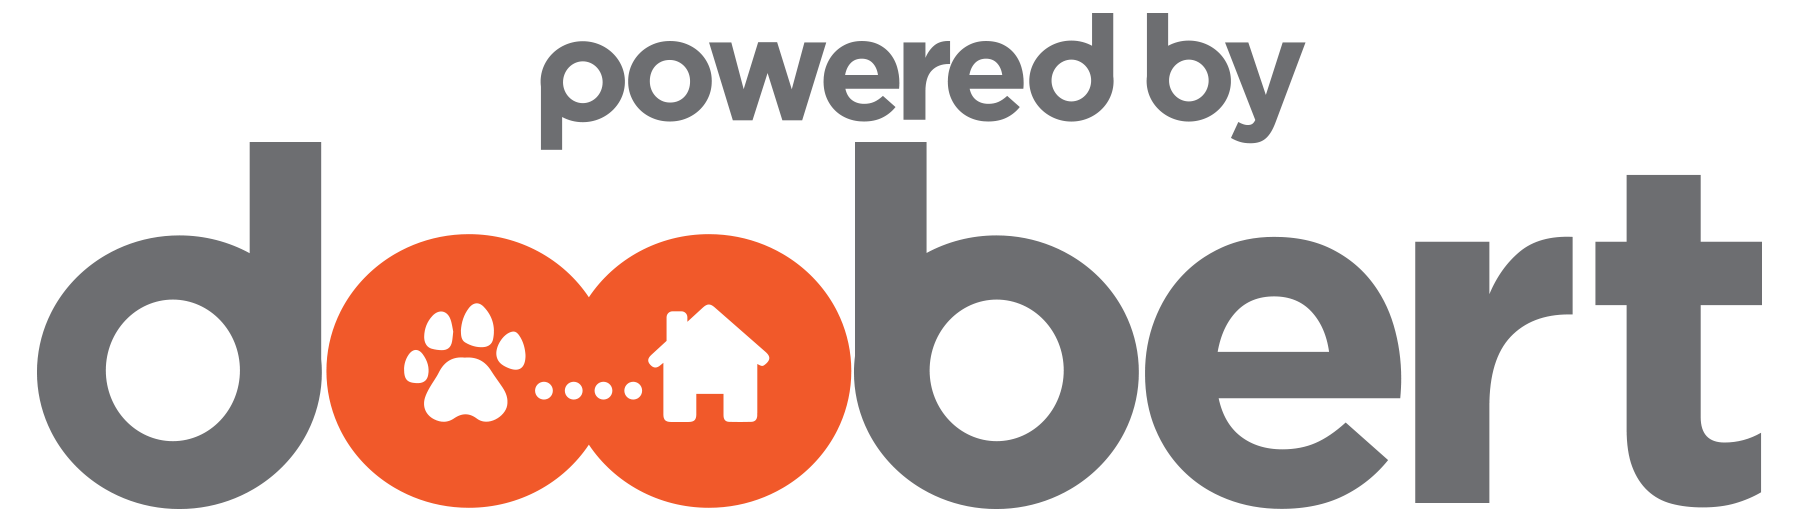 Powered by Doobert